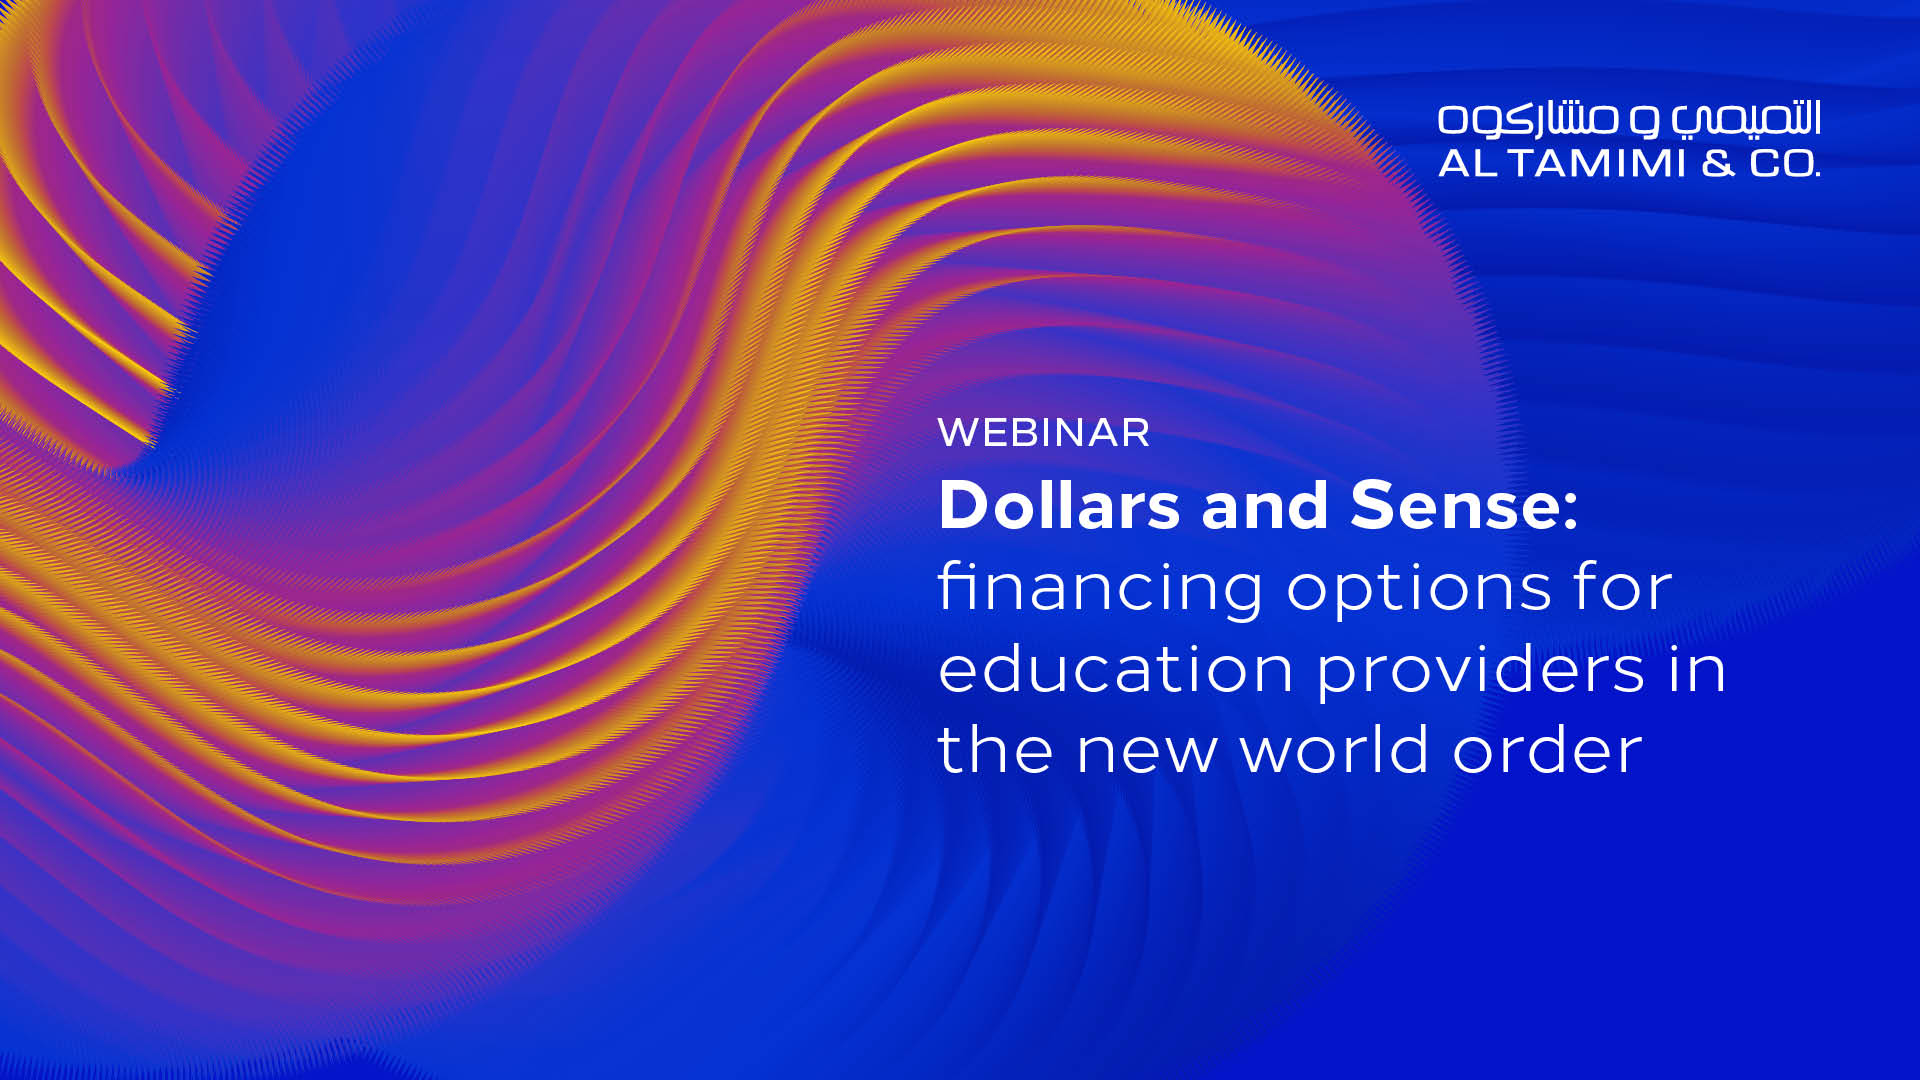 Dollars and Sense: financing options for education providers in the new world order